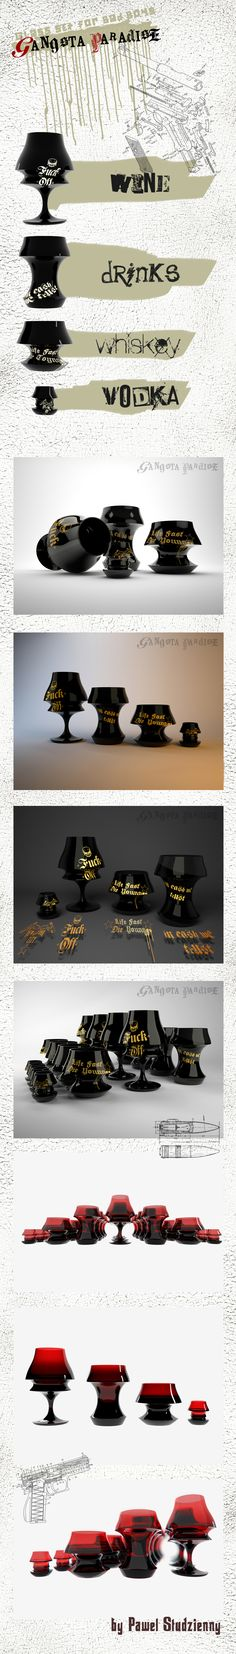 """GANGSTA PARADISE"" project of exlusive set of glass for alcohol inspired the gangster world of big cities. black glass painted with 24-karat gold or red transparent glass."